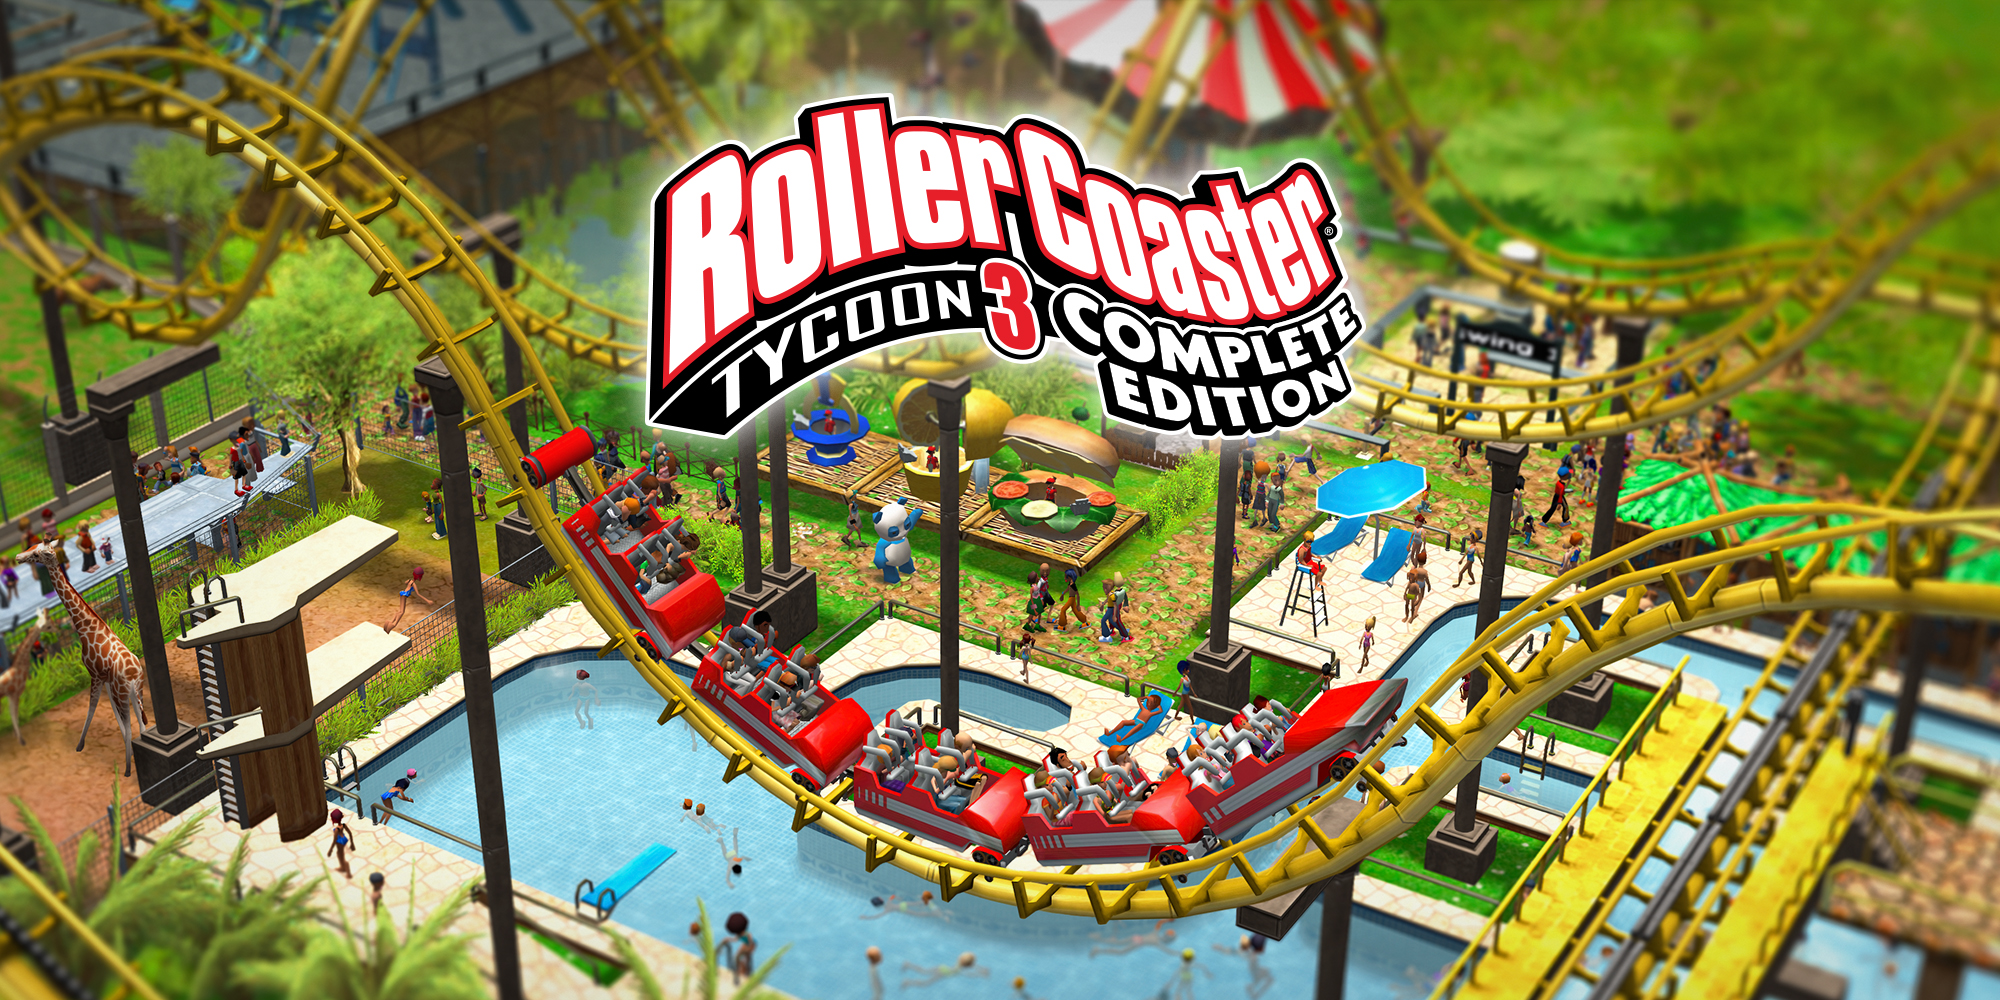 GAMERTAG – Rollercoaster Tycoon